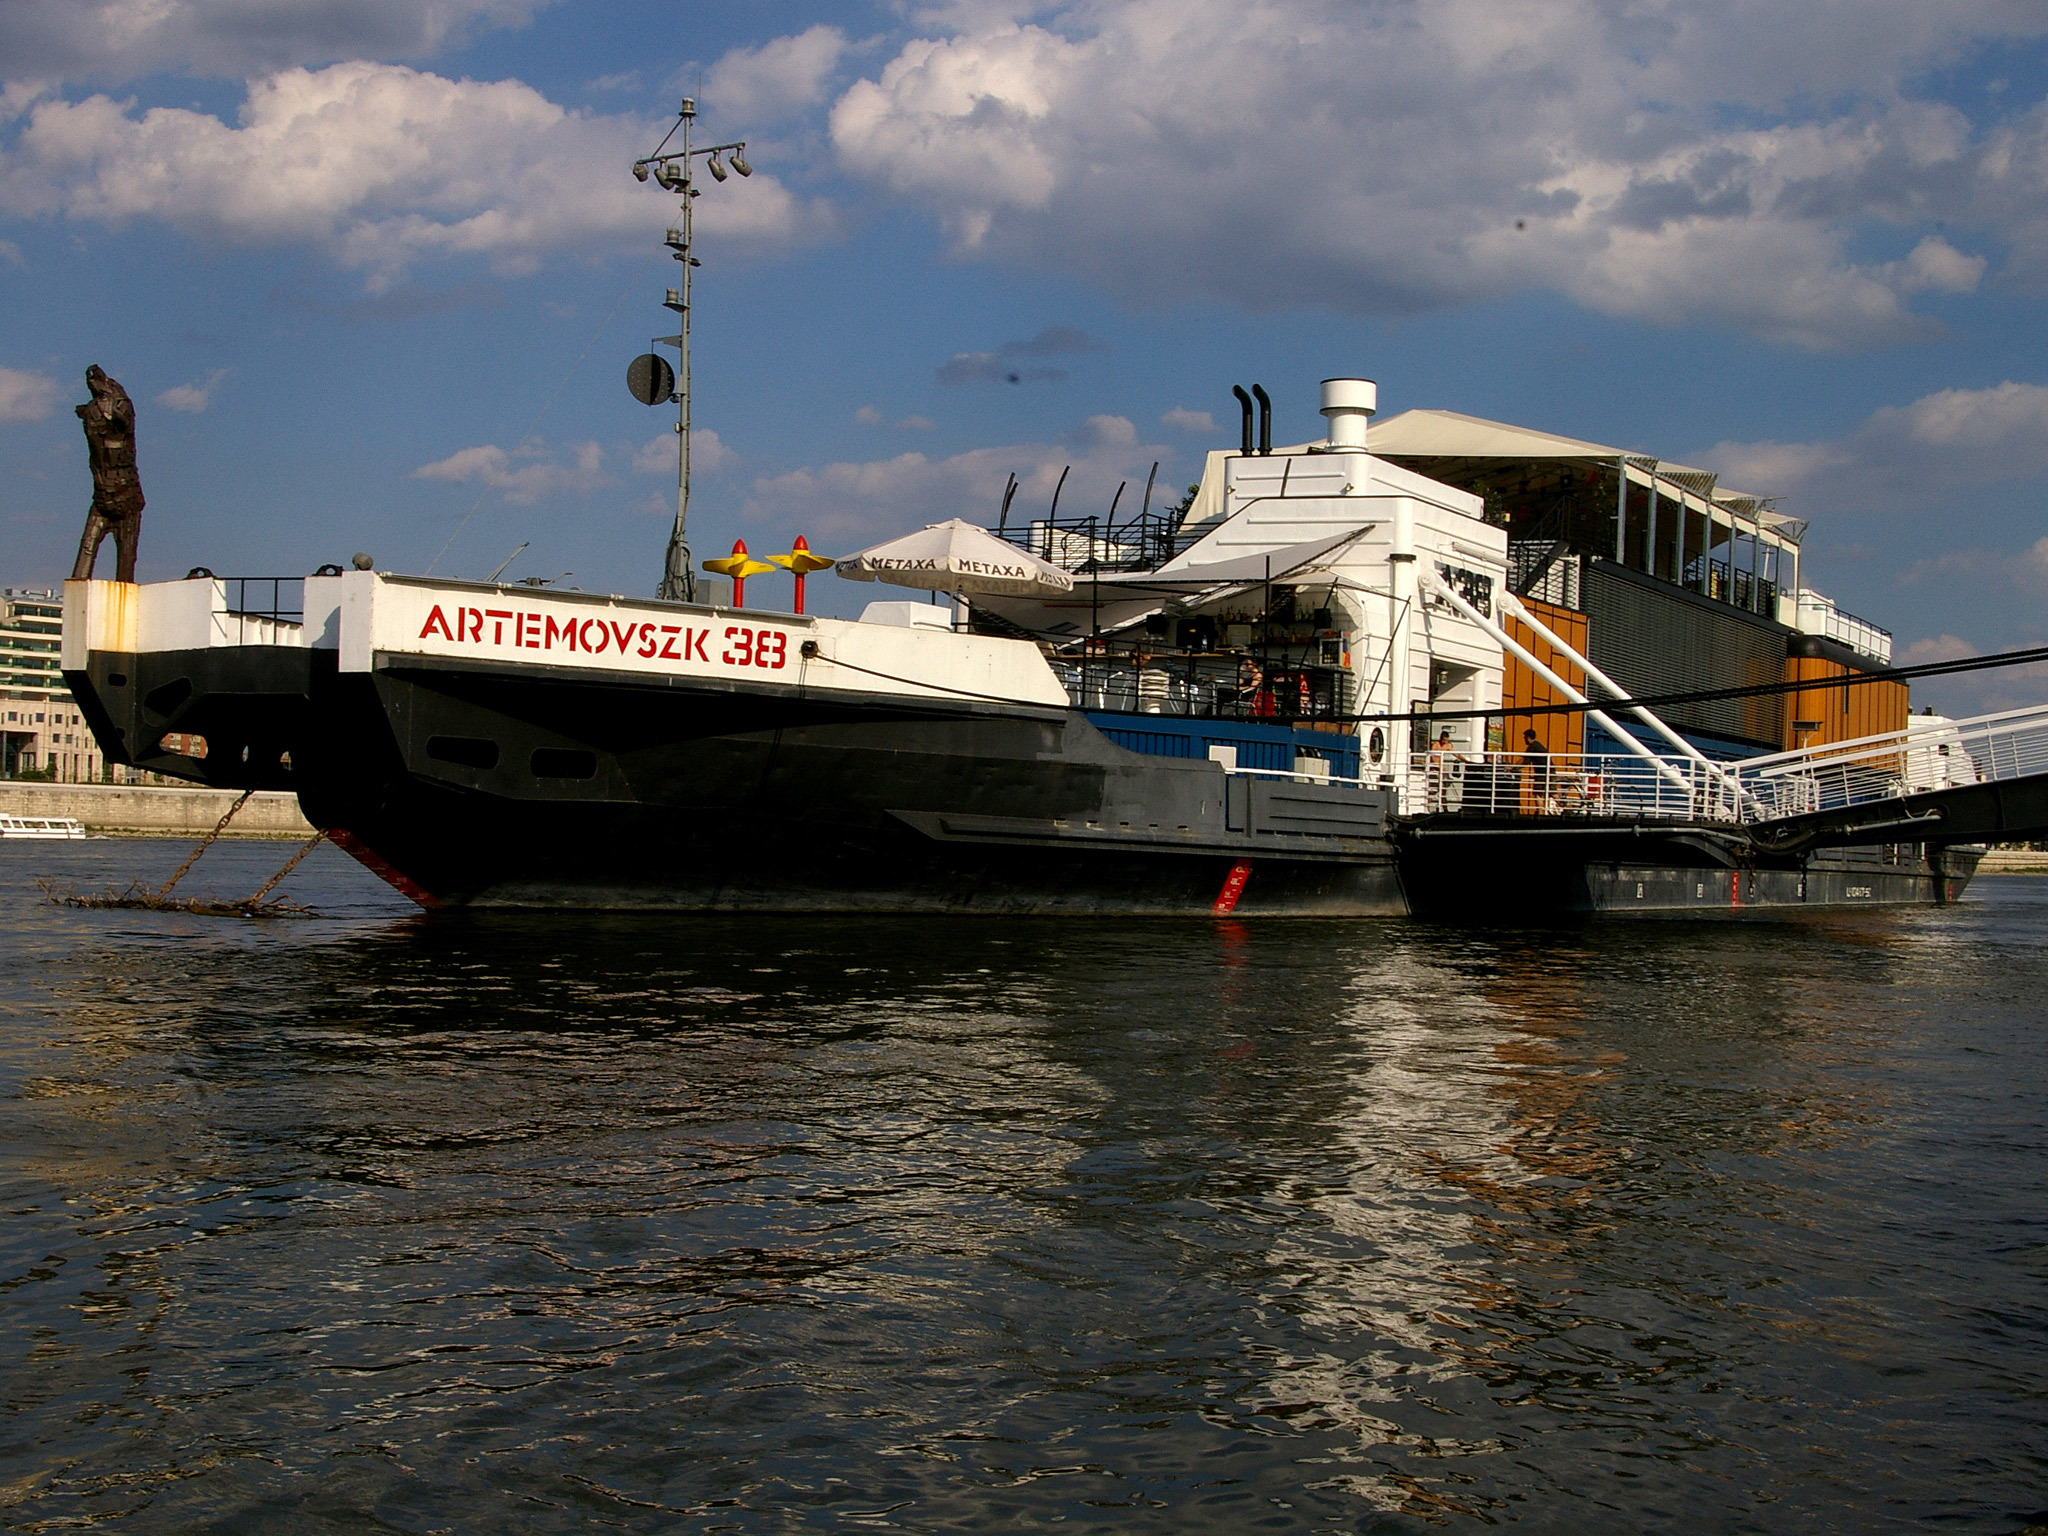 A38 floating cultural centre and bar complex in Budapest